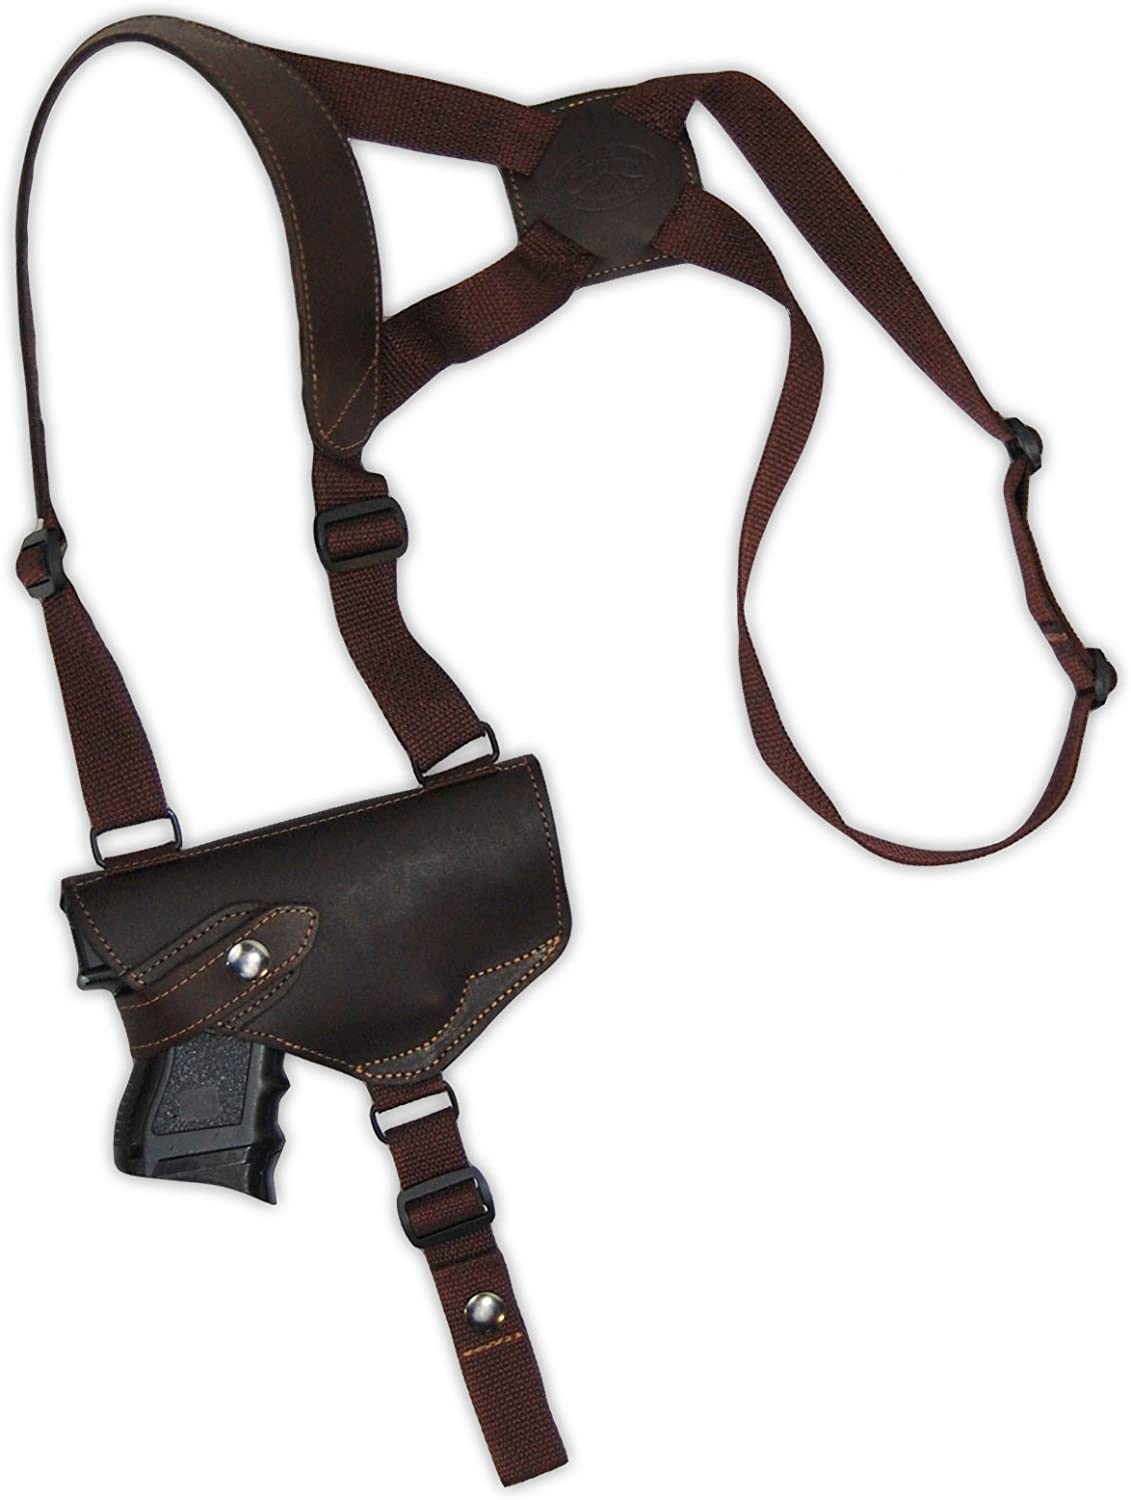 New Barsony Brown Leather Shoulder Holster for Limited price sale 40 Max 66% OFF 45 Compact 9mm